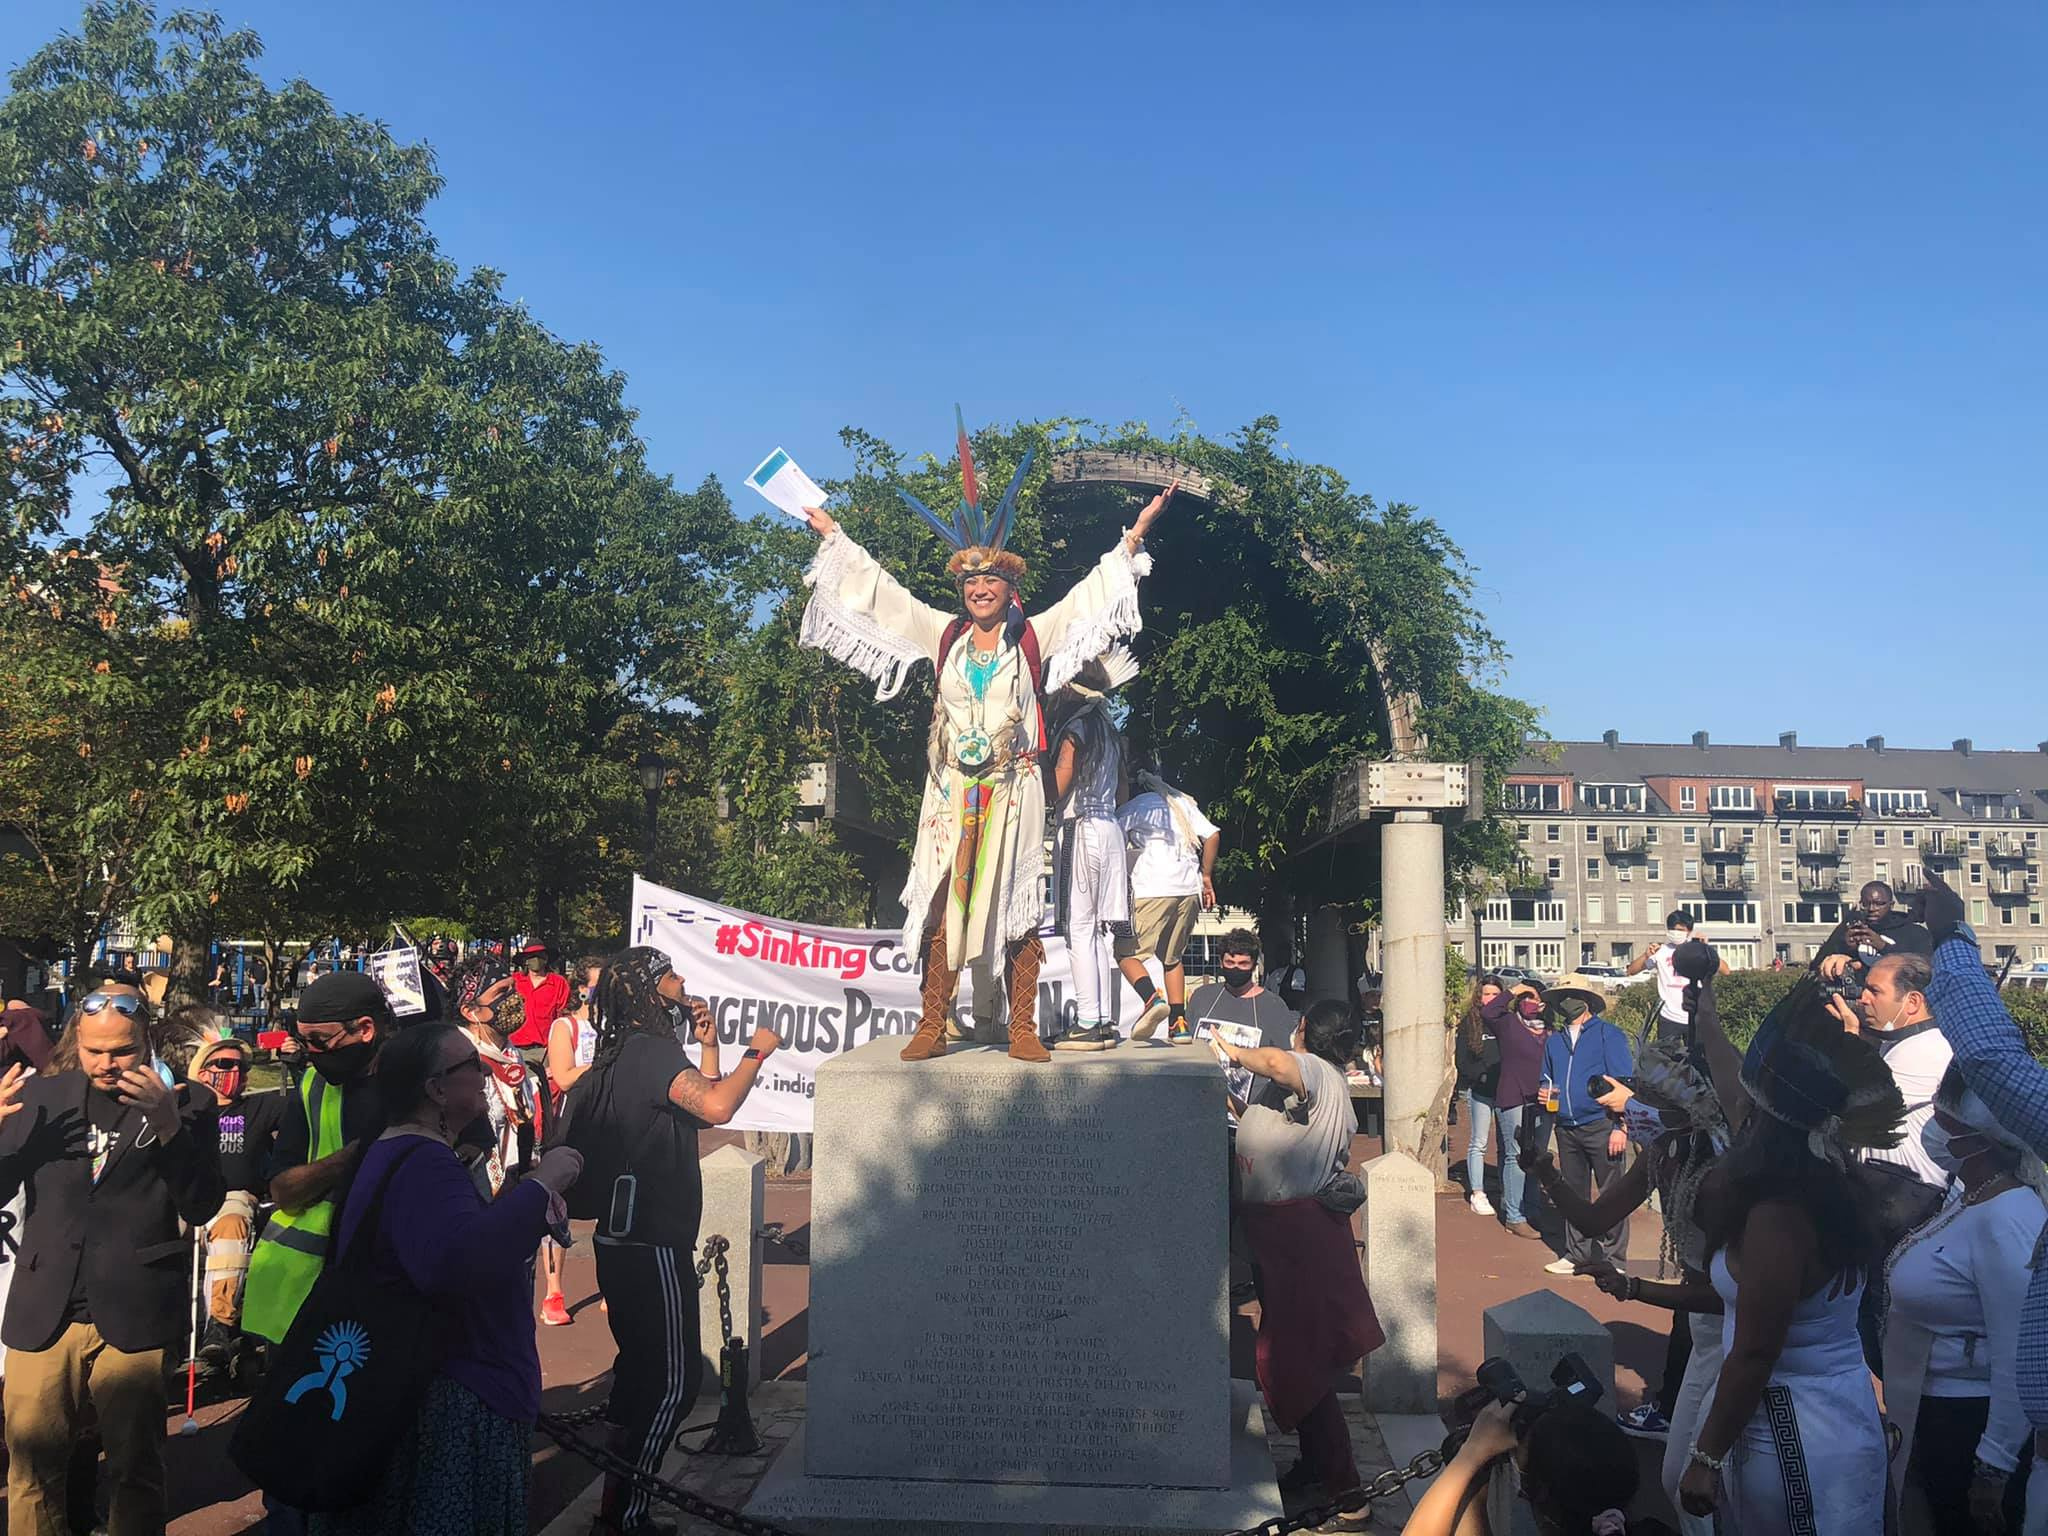 Chali'Naru Dones, Taíno, speaking with arms outstretched to a crowd from on top of the column that formerly held the Columbus Day Statue in Boston